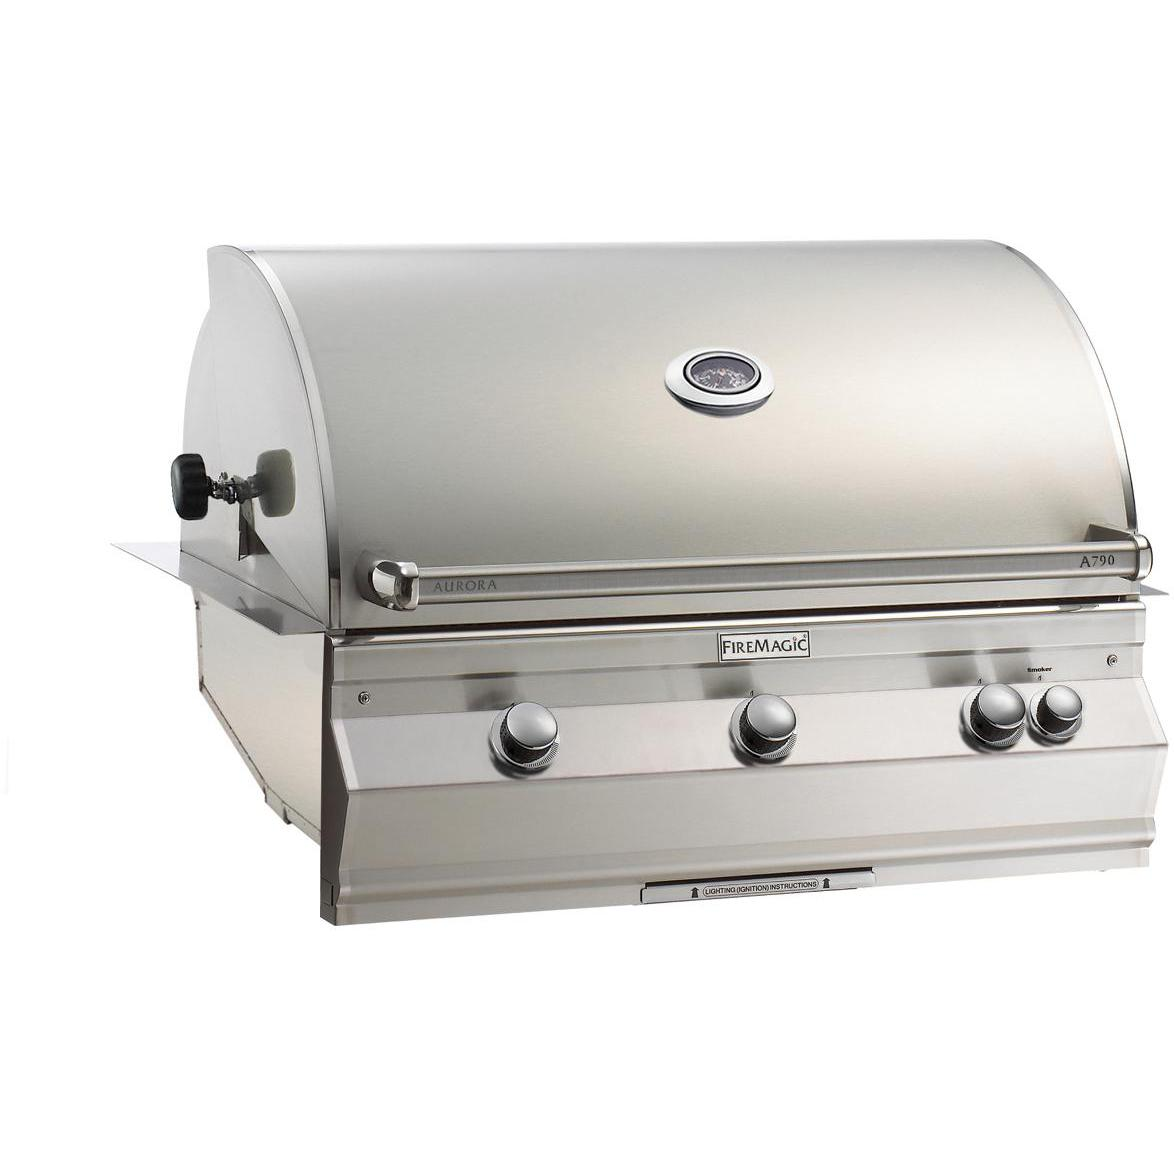 firemagic-aurora-a790i-analog-style-built-in-grill-analog.jpg